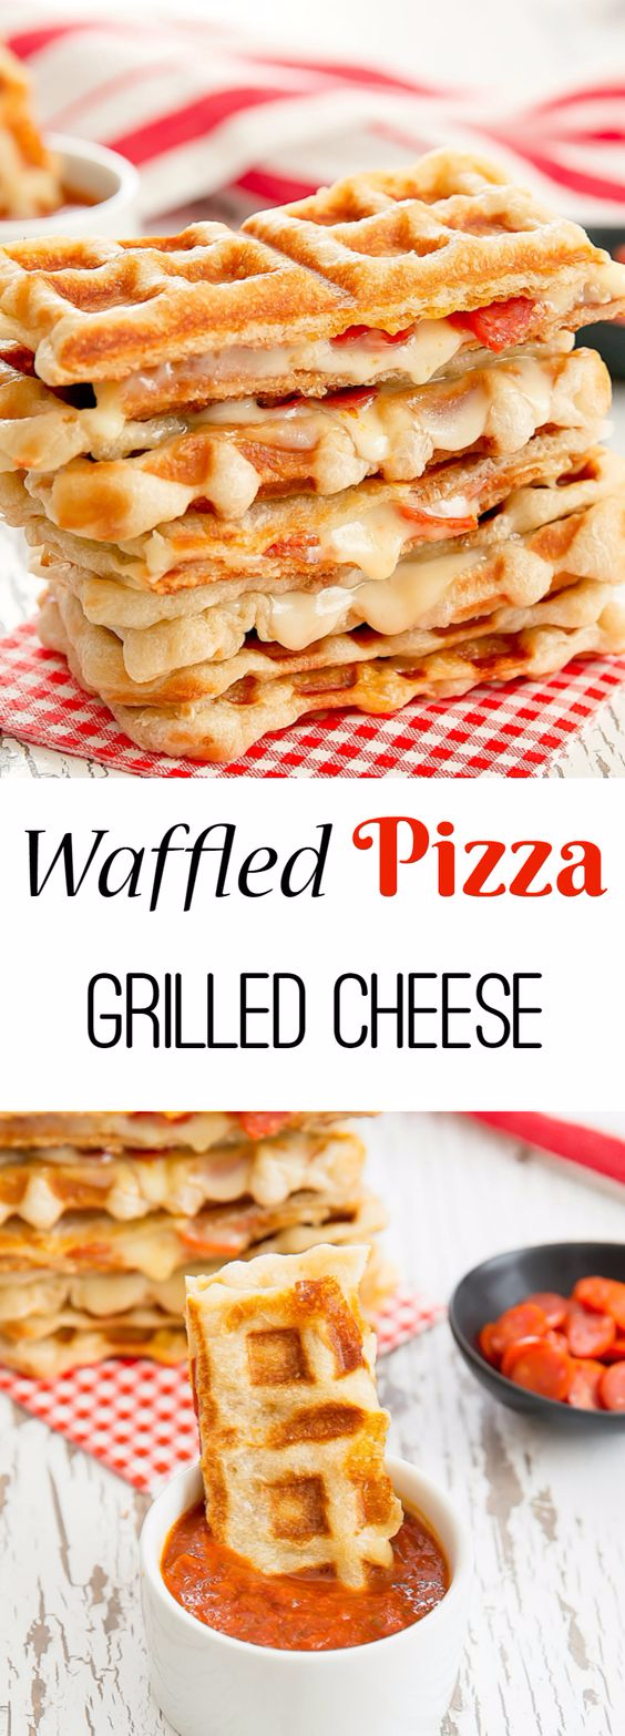 Waffle Iron Hacks and Easy Recipes for Waffle Irons - Waffled Pepperoni Pizza Grilled Cheese - Quick Ways to Make Healthy Meals in a Waffle Maker - Breakfast, Dinner, Lunch, Dessert and Snack Ideas - Homemade Pizza, Cinnamon Rolls, Egg, Low Carb, Sandwich, Bisquick, Savory Recipes and Biscuits #diy #waffle #hacks